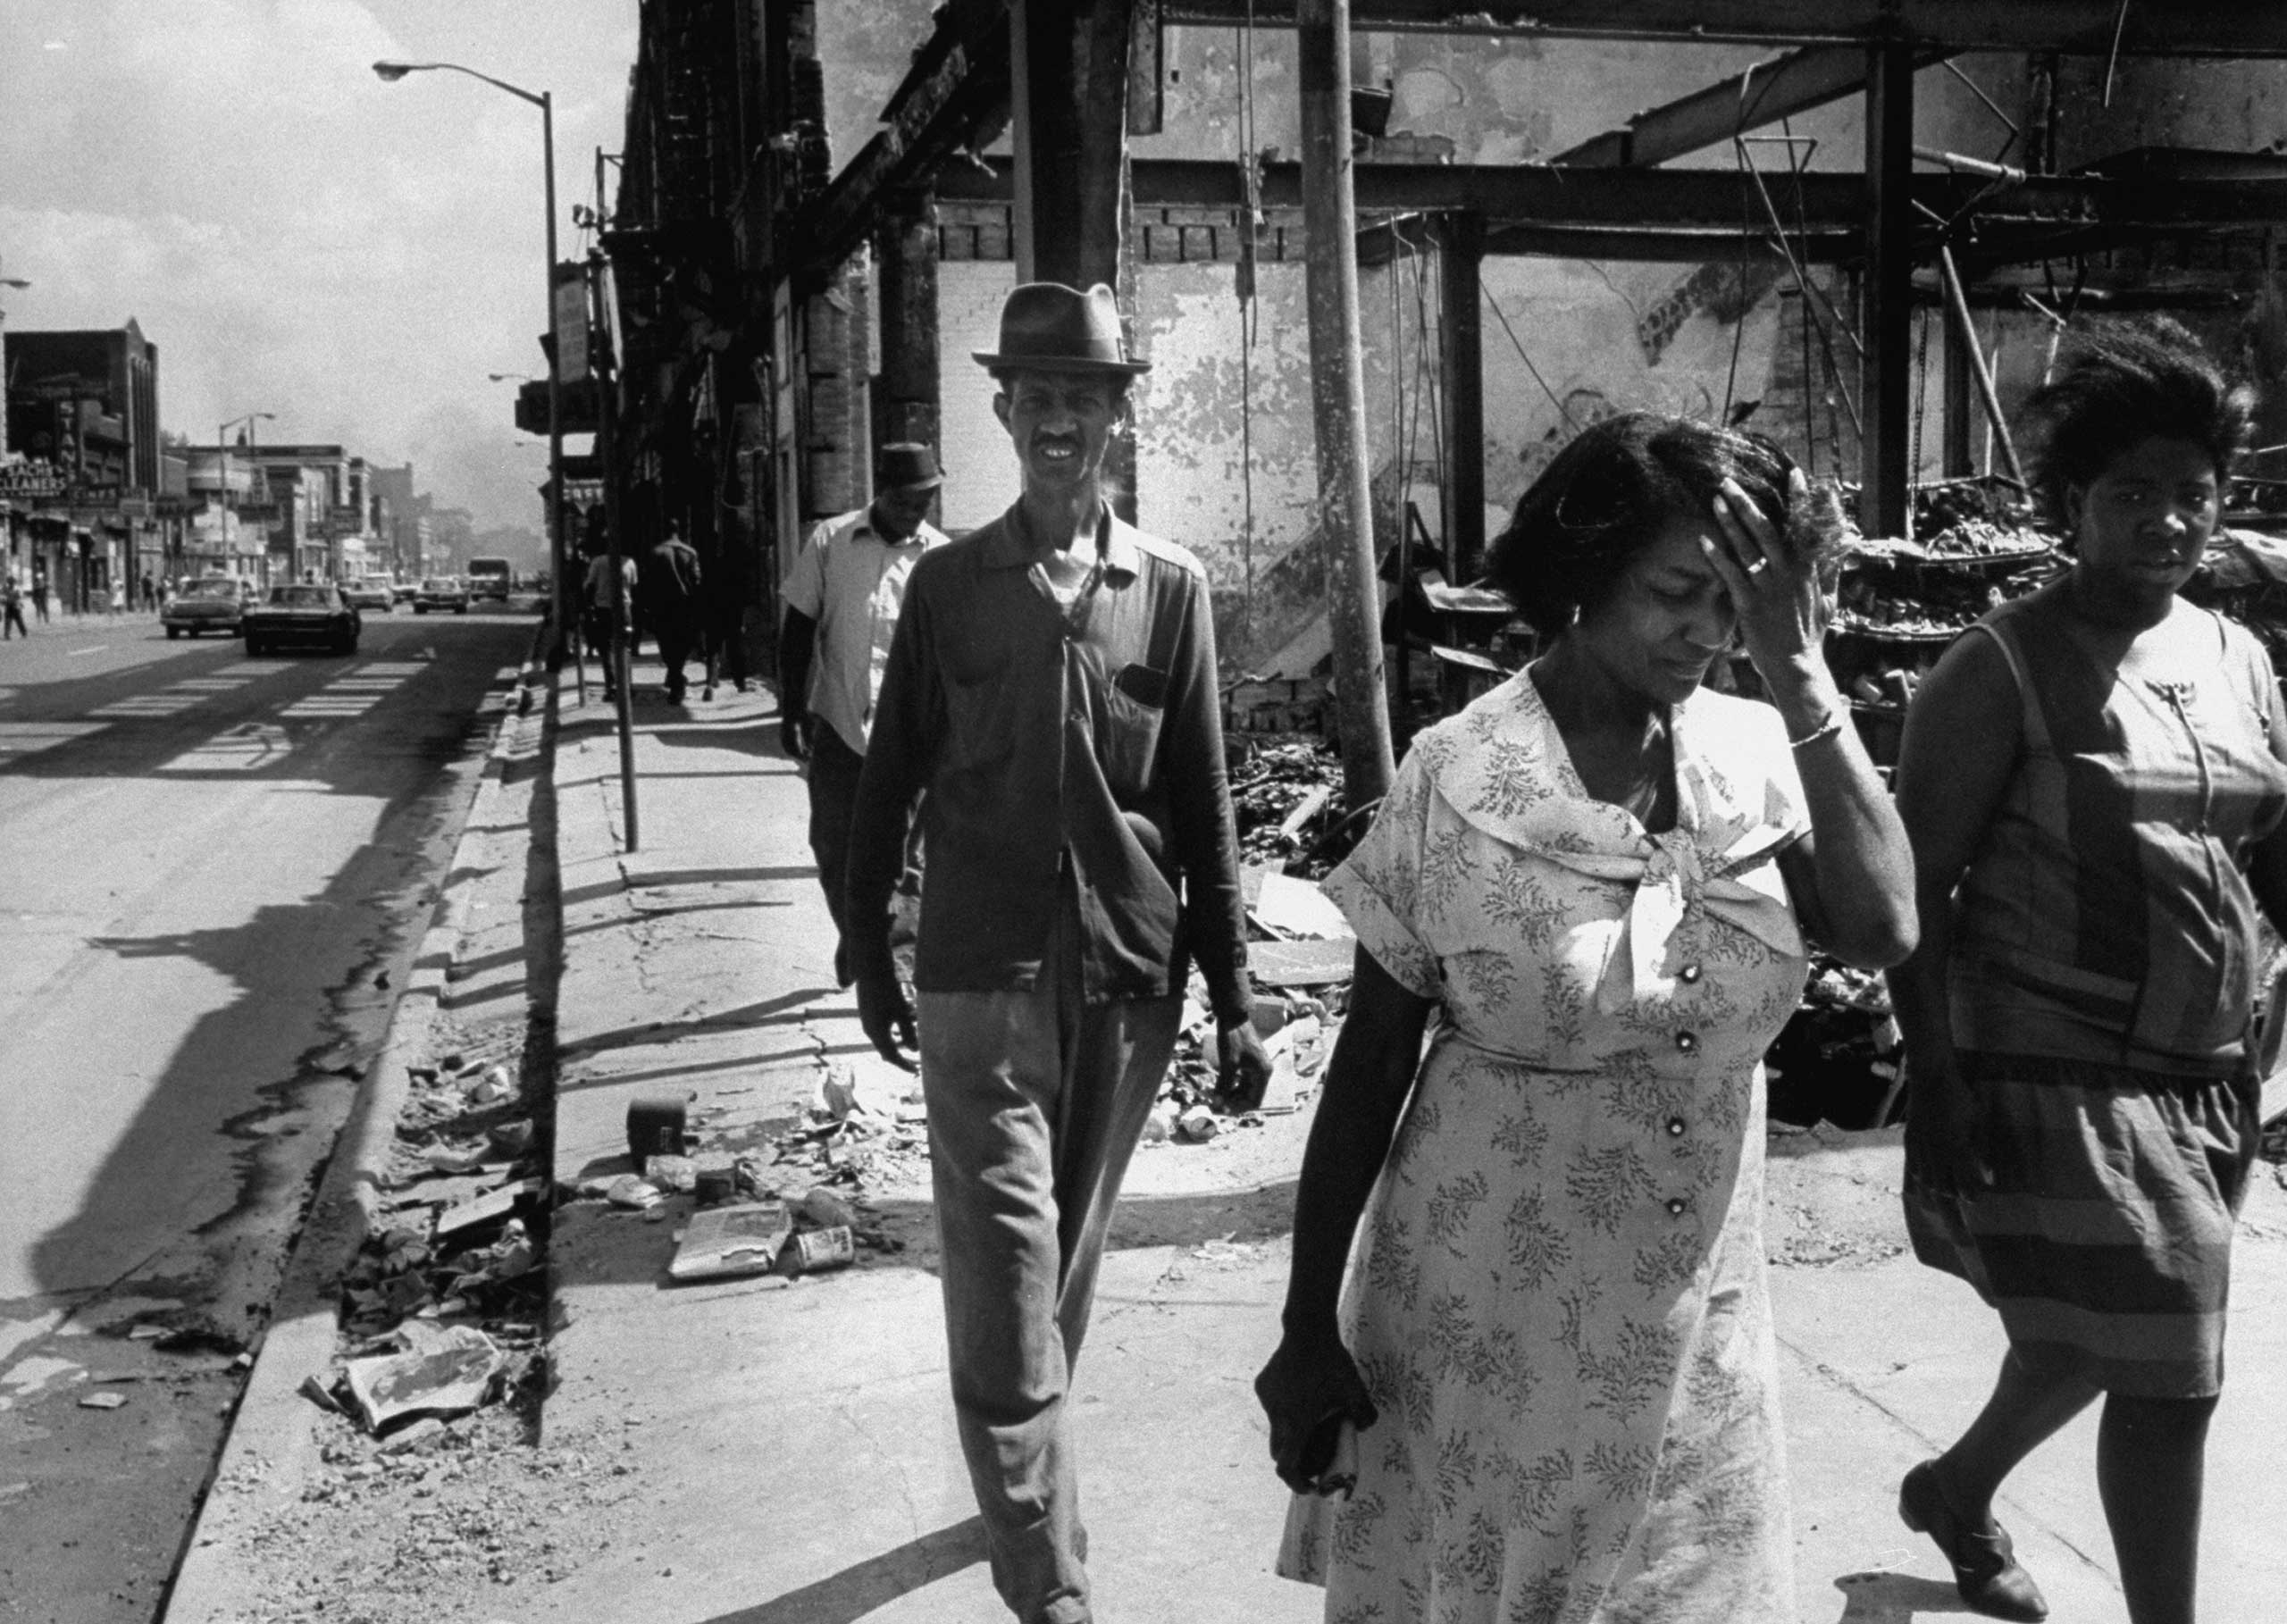 <b>Not published in LIFE.</b> Detroit, July 1967. A family takes a walk in a neighborhood devastated by rioting.